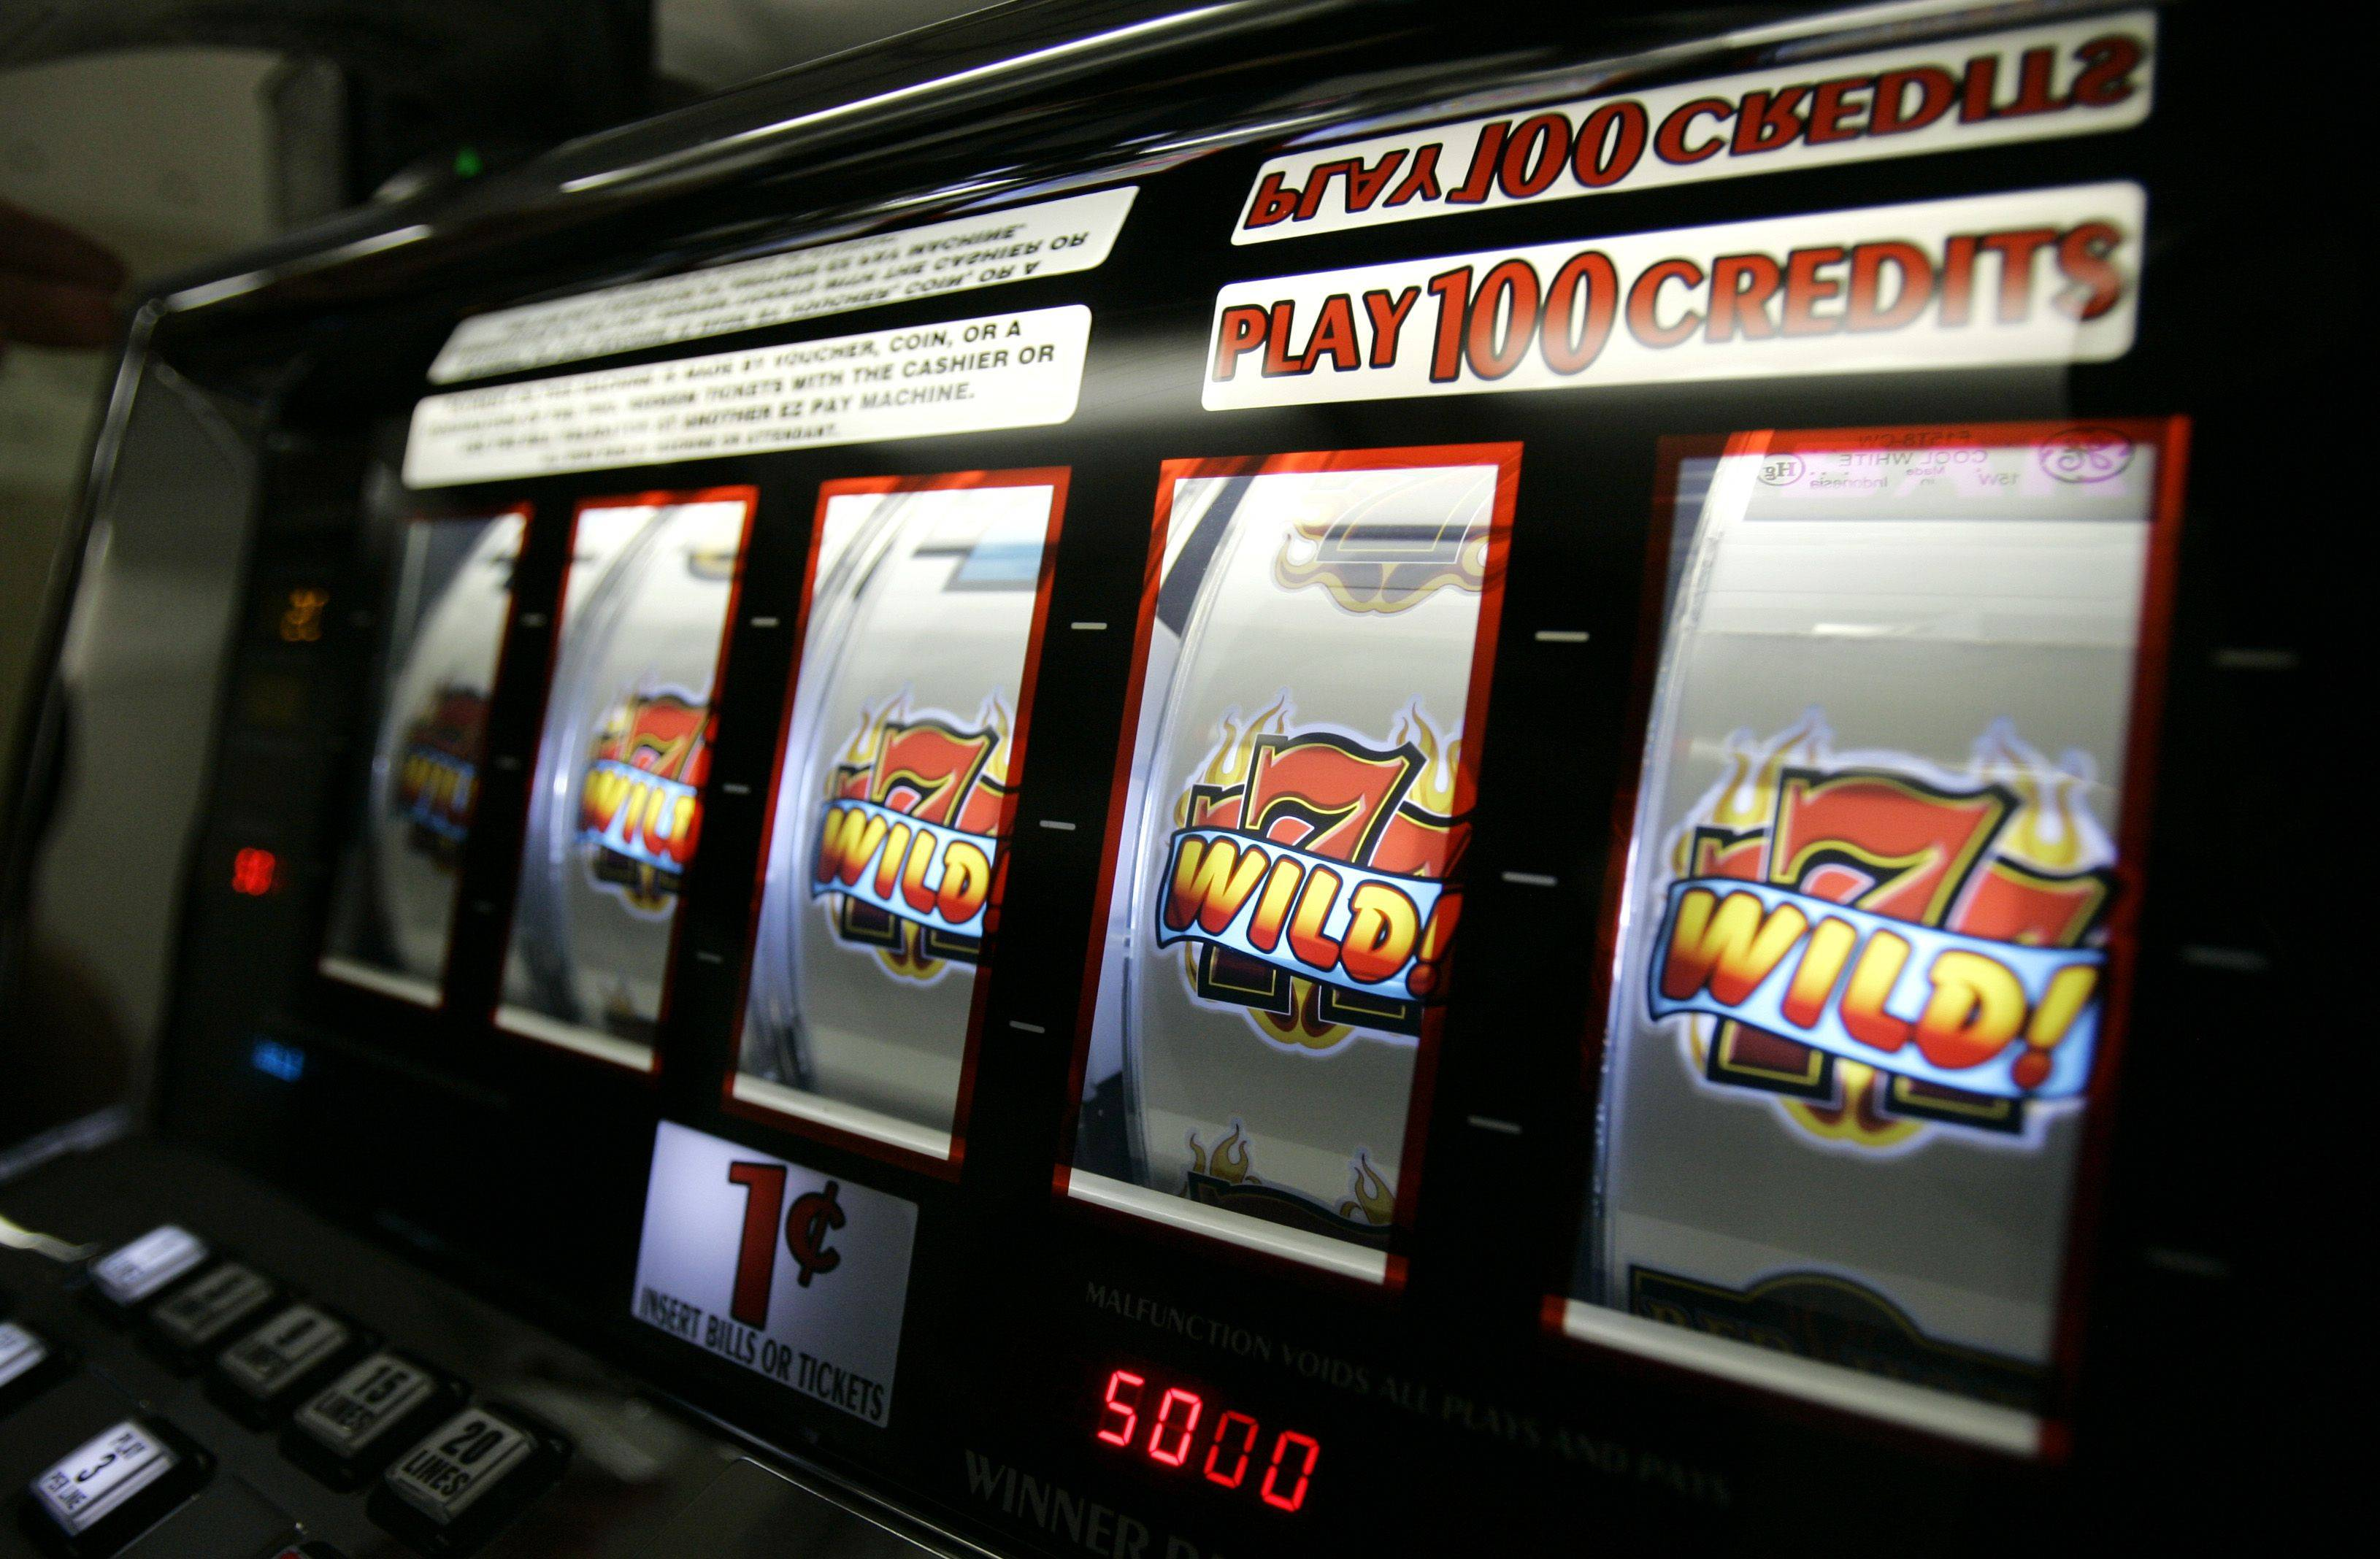 Illinois Lawmakers recently sent legislation to Gov. Pat Quinn that would expand gambling by allowing slot machines at racetracks and airports, plus five new casinos, including one in Lake County.